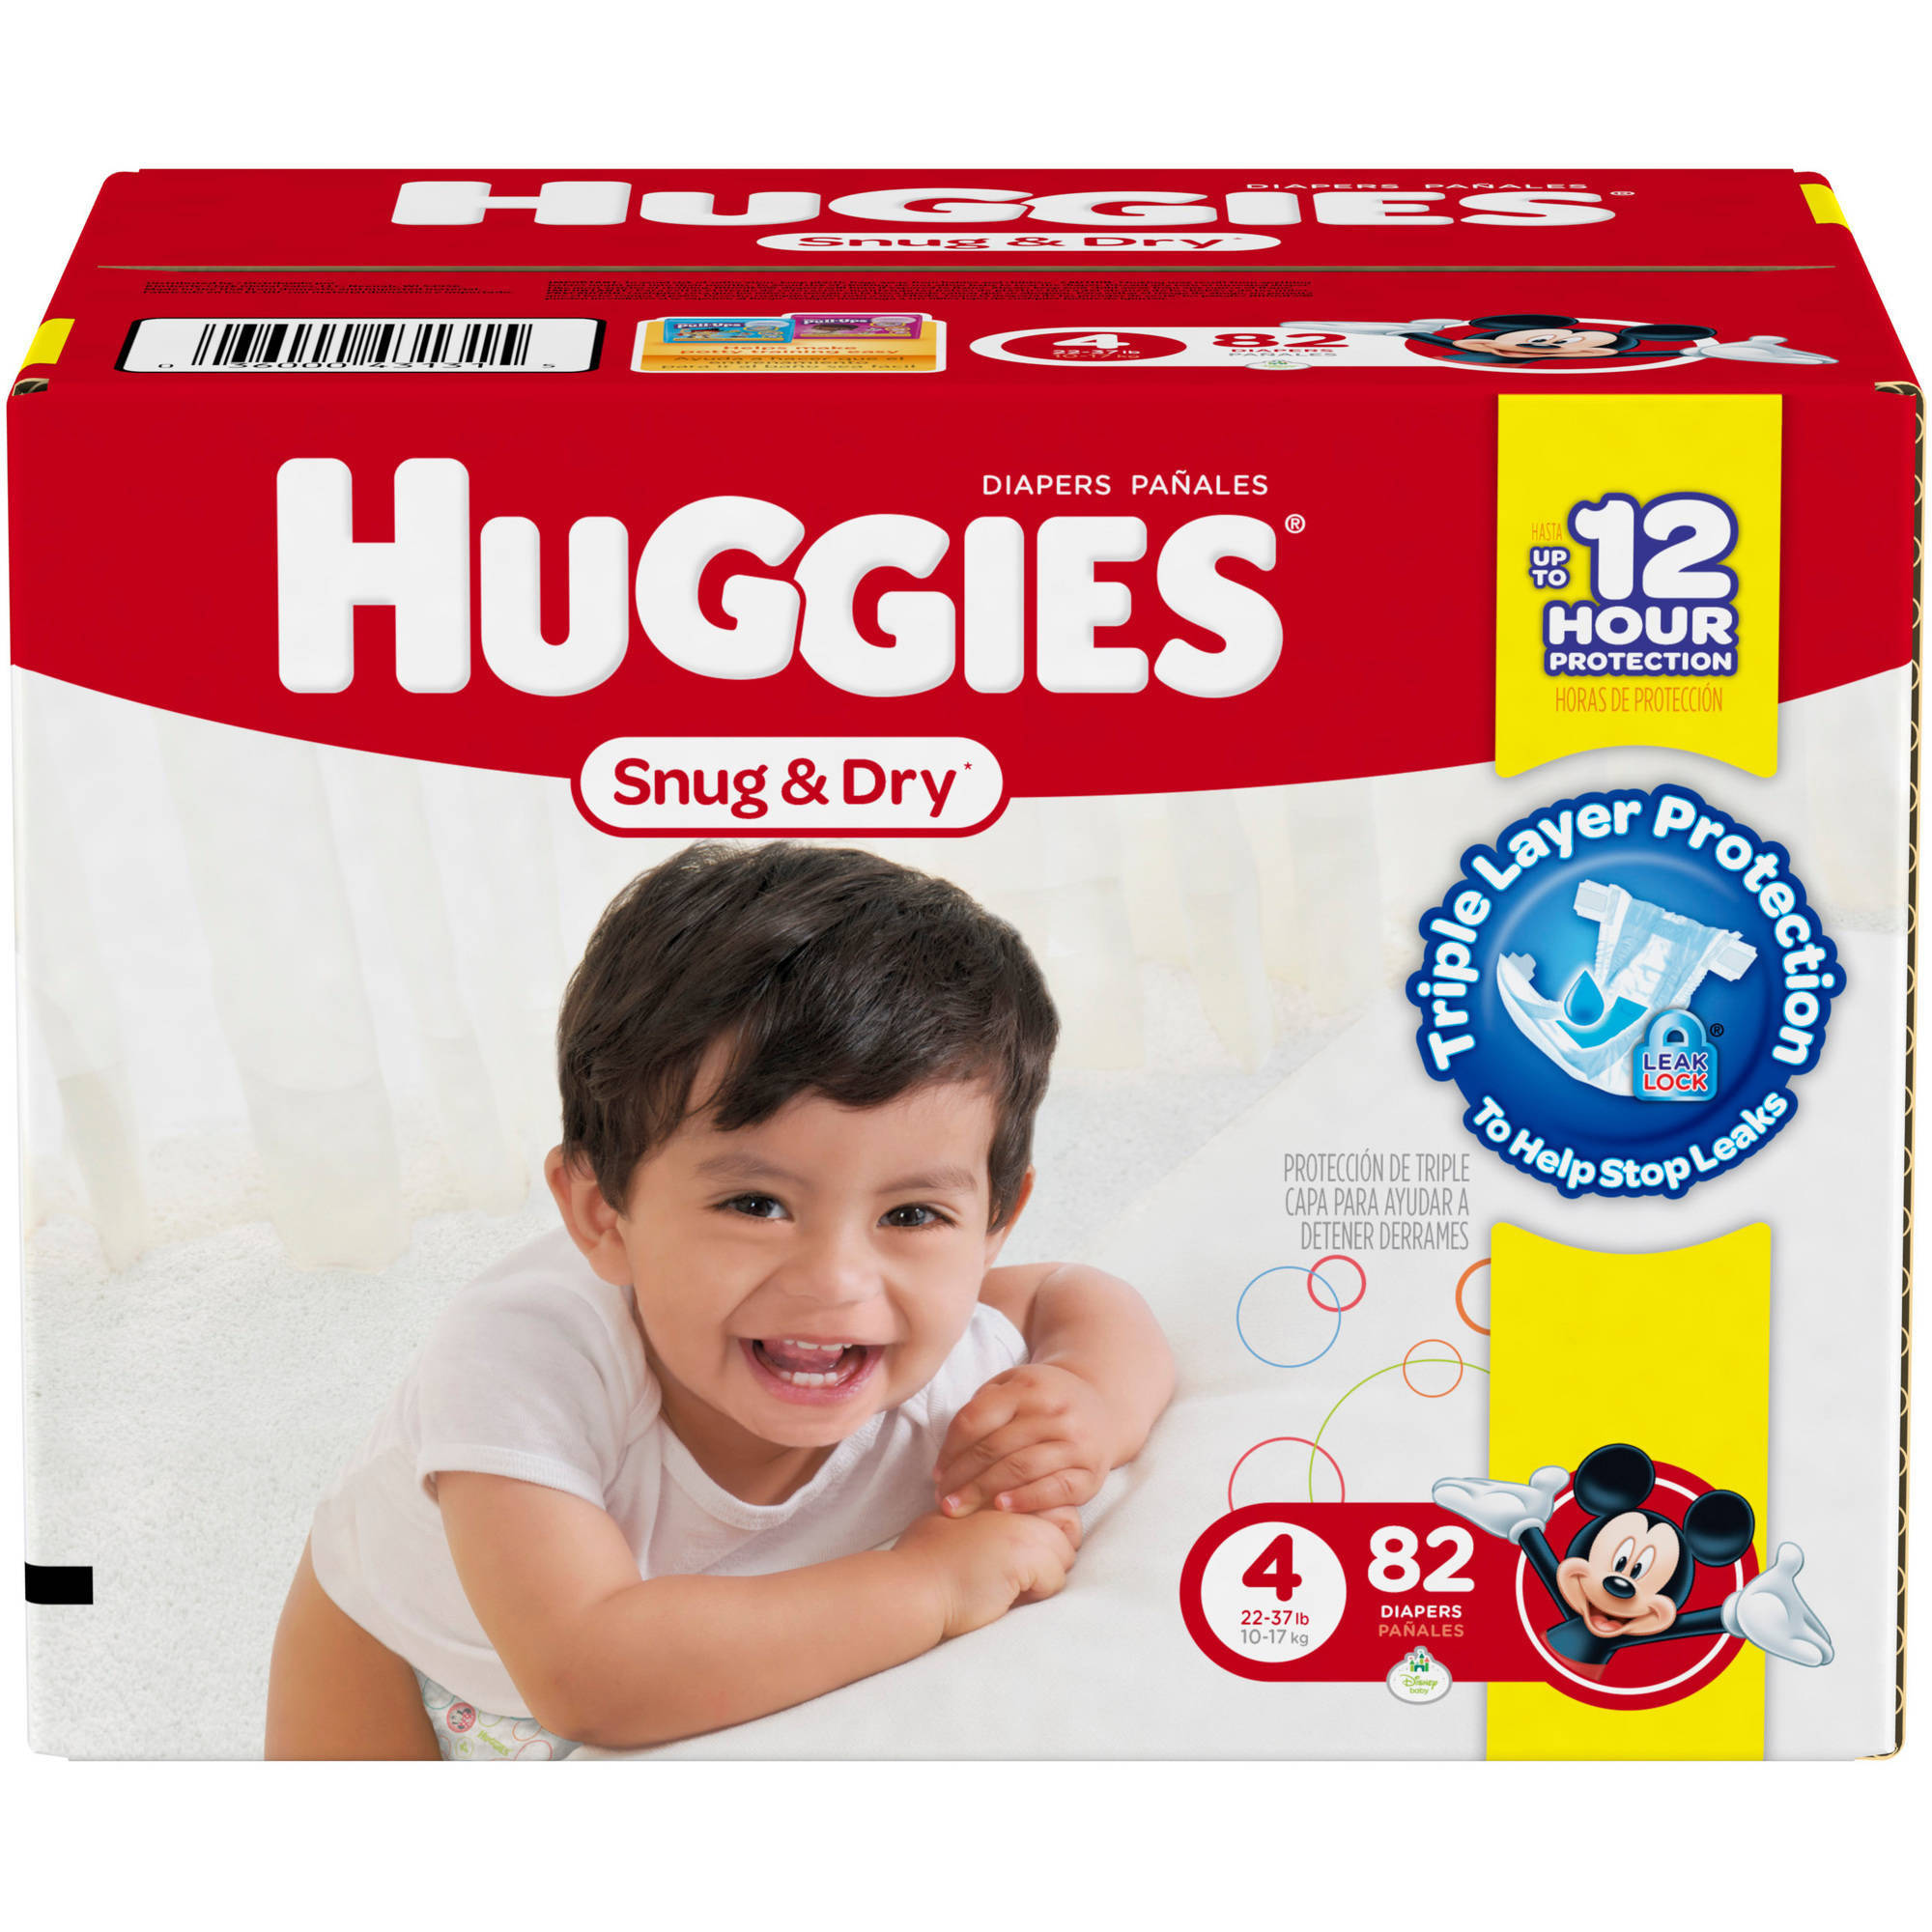 HUGGIES Snug & Dry Diapers, Big Pack, (Choose Your Size)